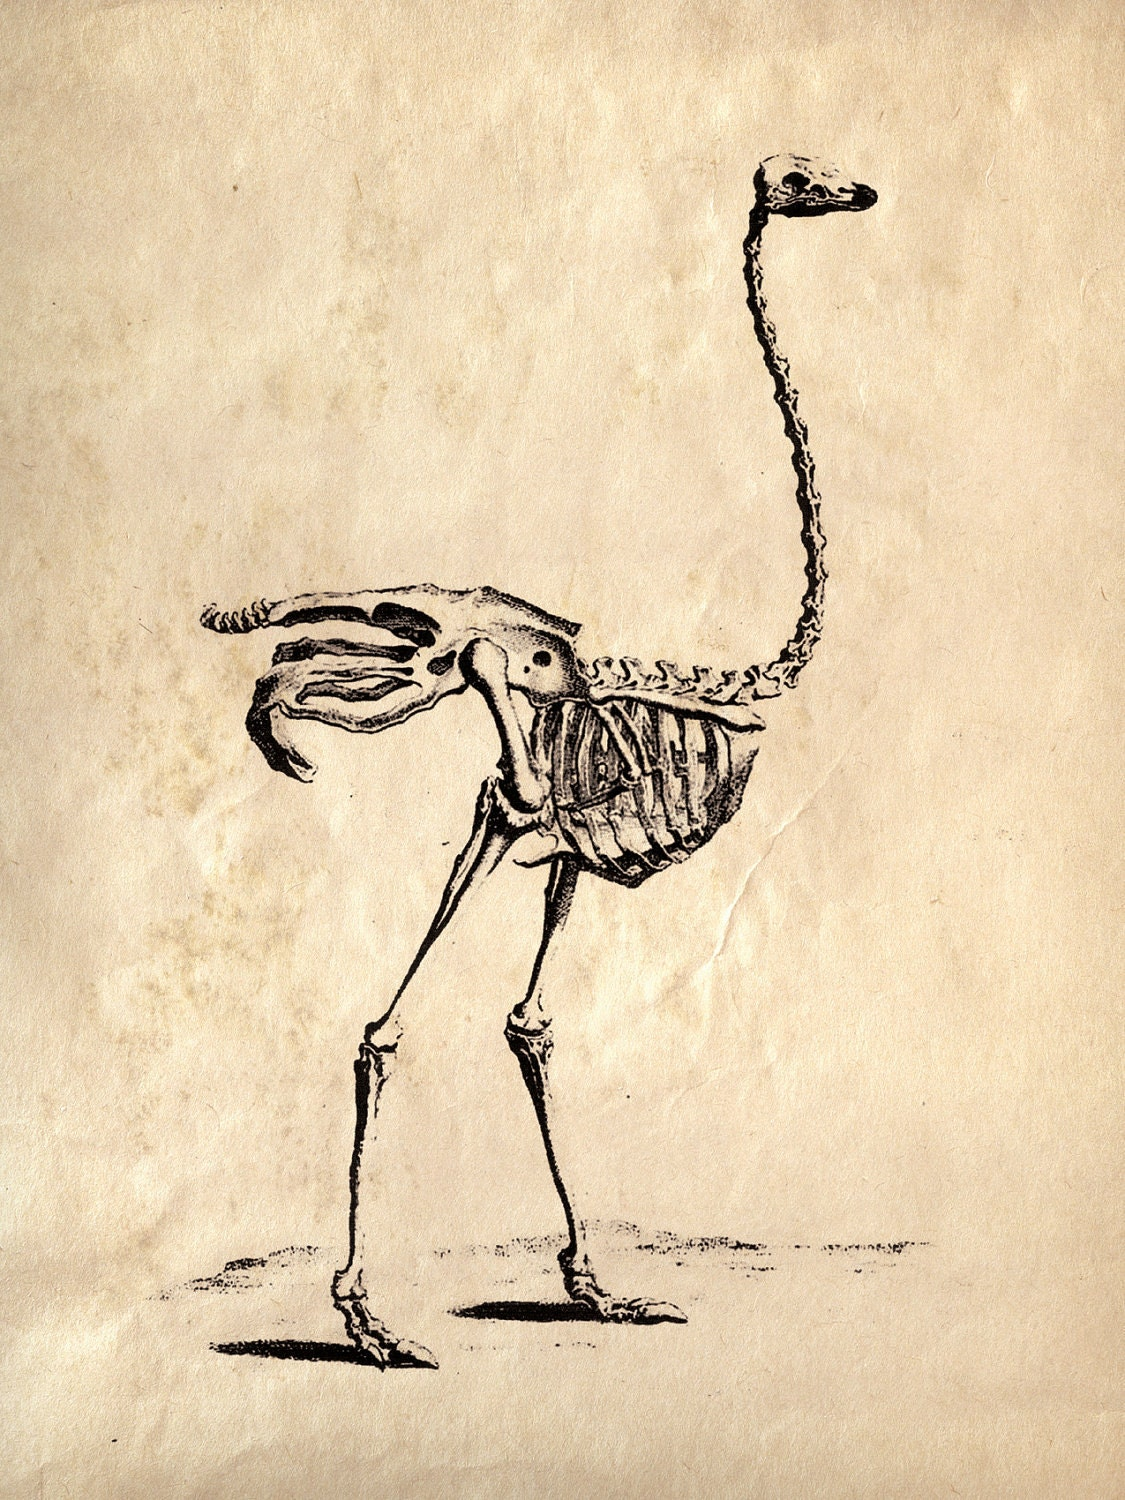 Ostrich wing skeleton - photo#16